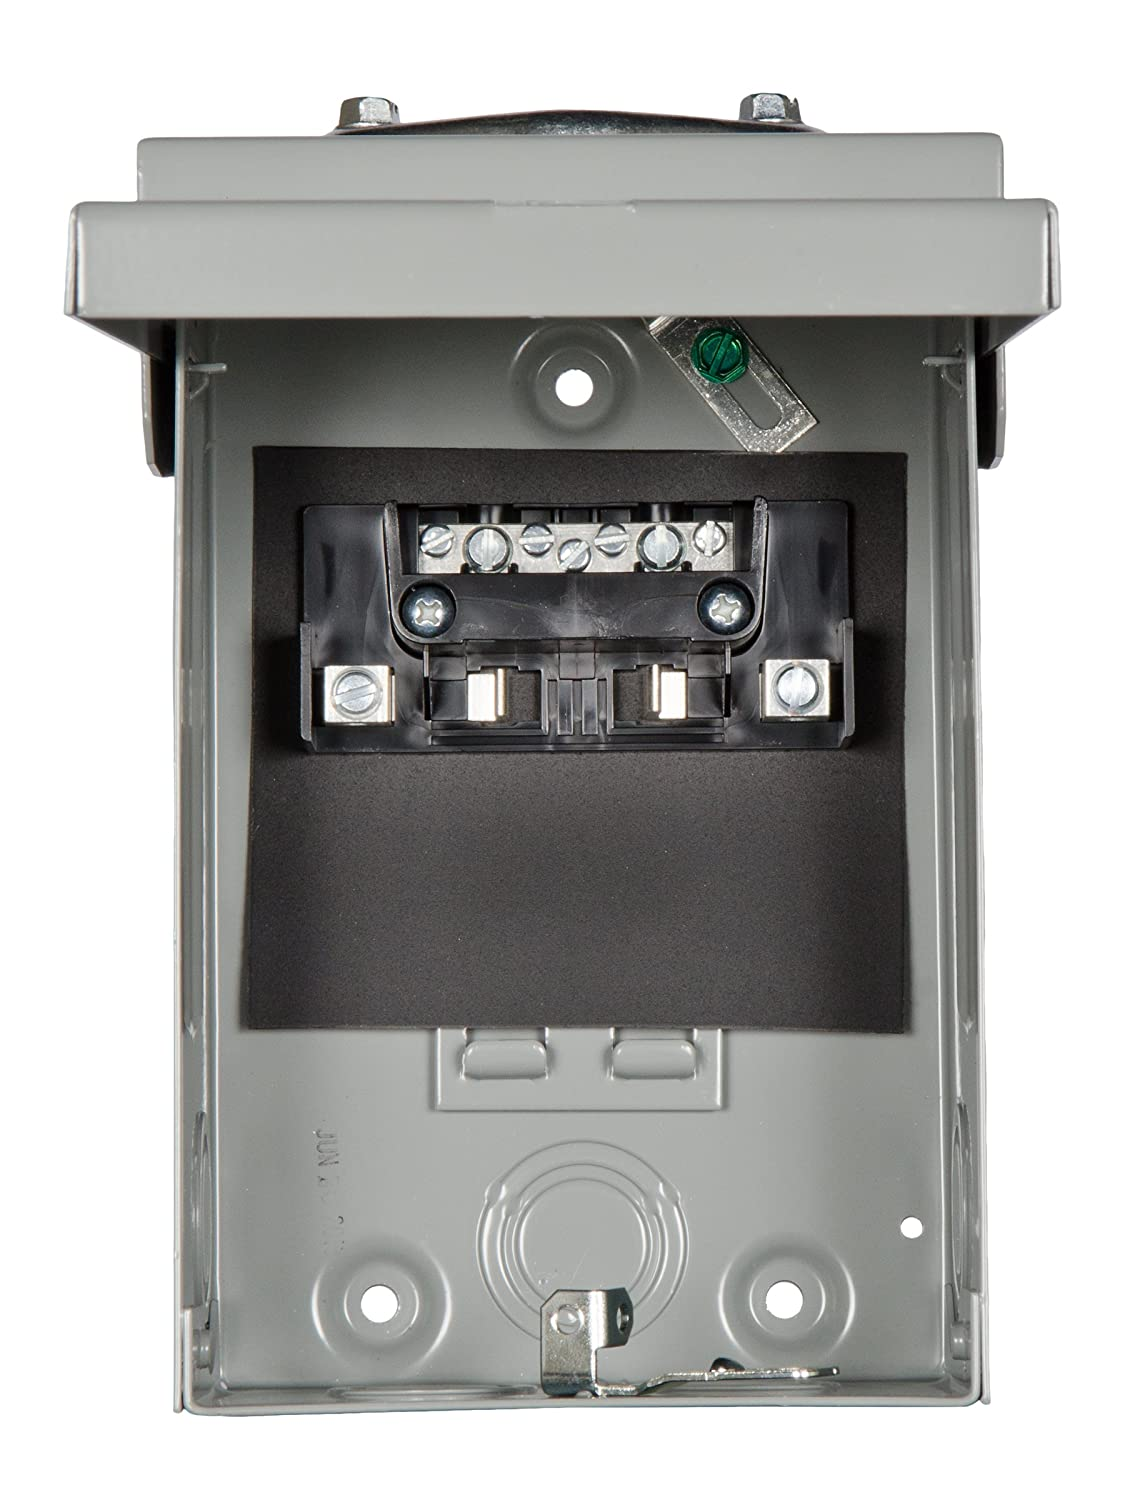 81b6KXqgMDL._SL1500_ circuit breaker panels amazon com electrical breakers, load Fuse Box to Breaker Box at panicattacktreatment.co